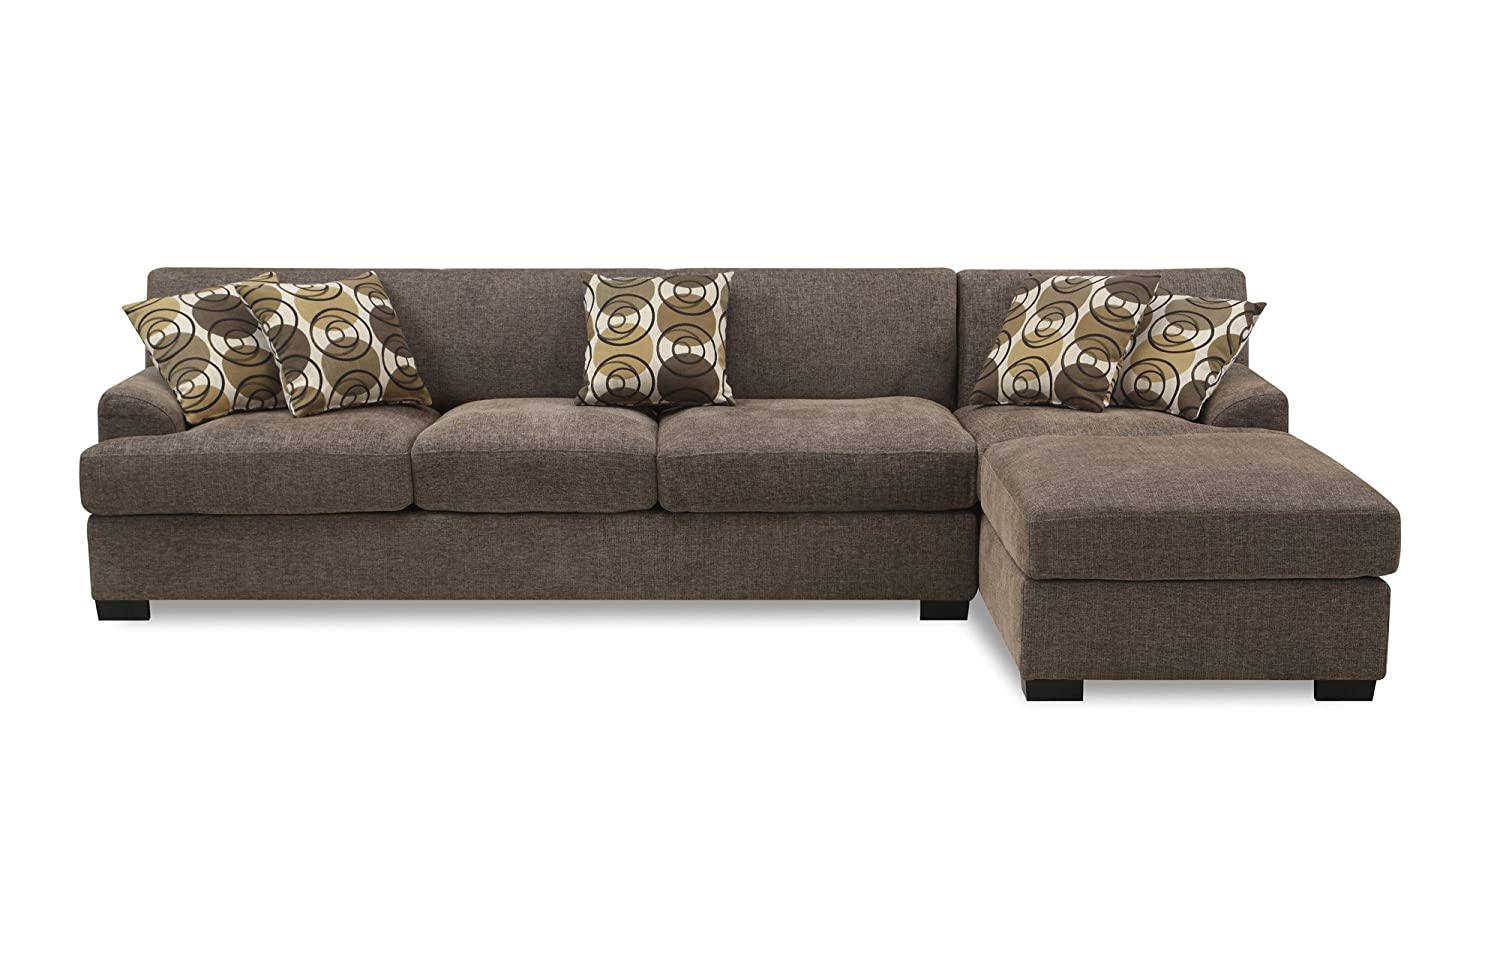 Amazon.com: Bobkona Poundex Benford Collection Faux Linen Chaise Sofa,  2 Piece, Slate: Kitchen U0026 Dining